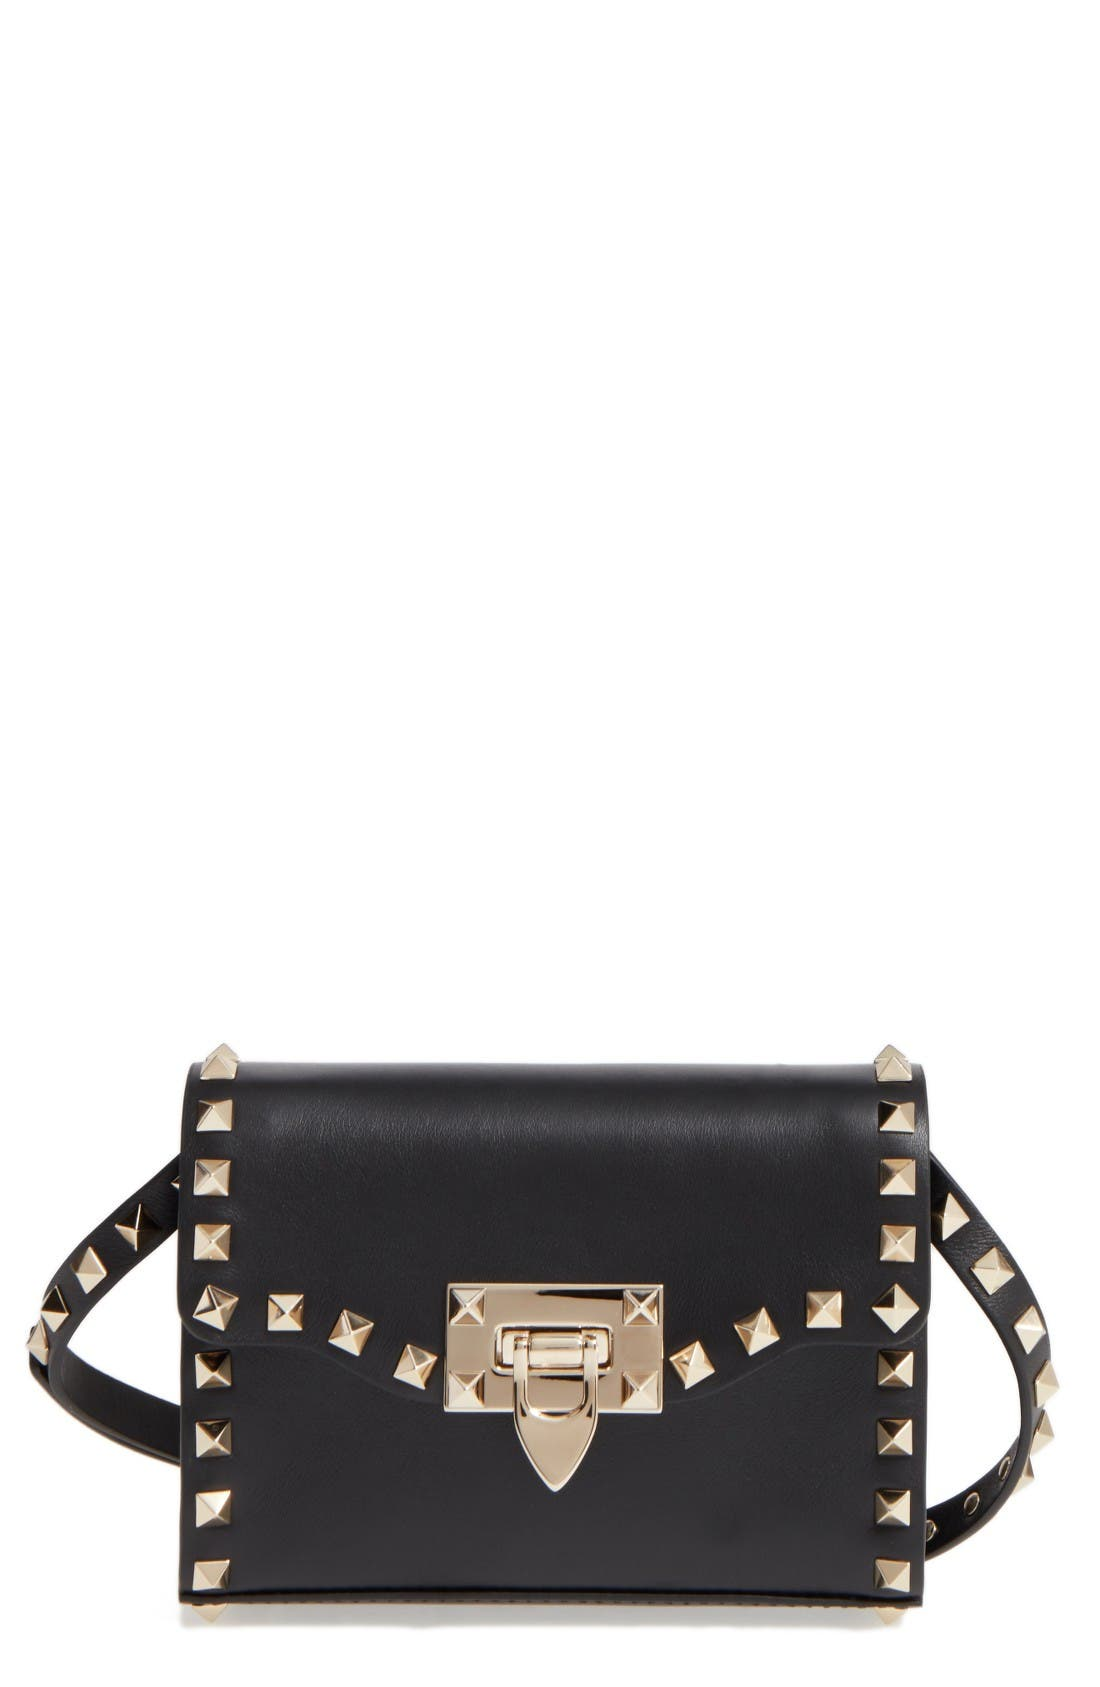 Main Image - VALENTINO GARAVANI Small Rockstud Leather Shoulder Bag